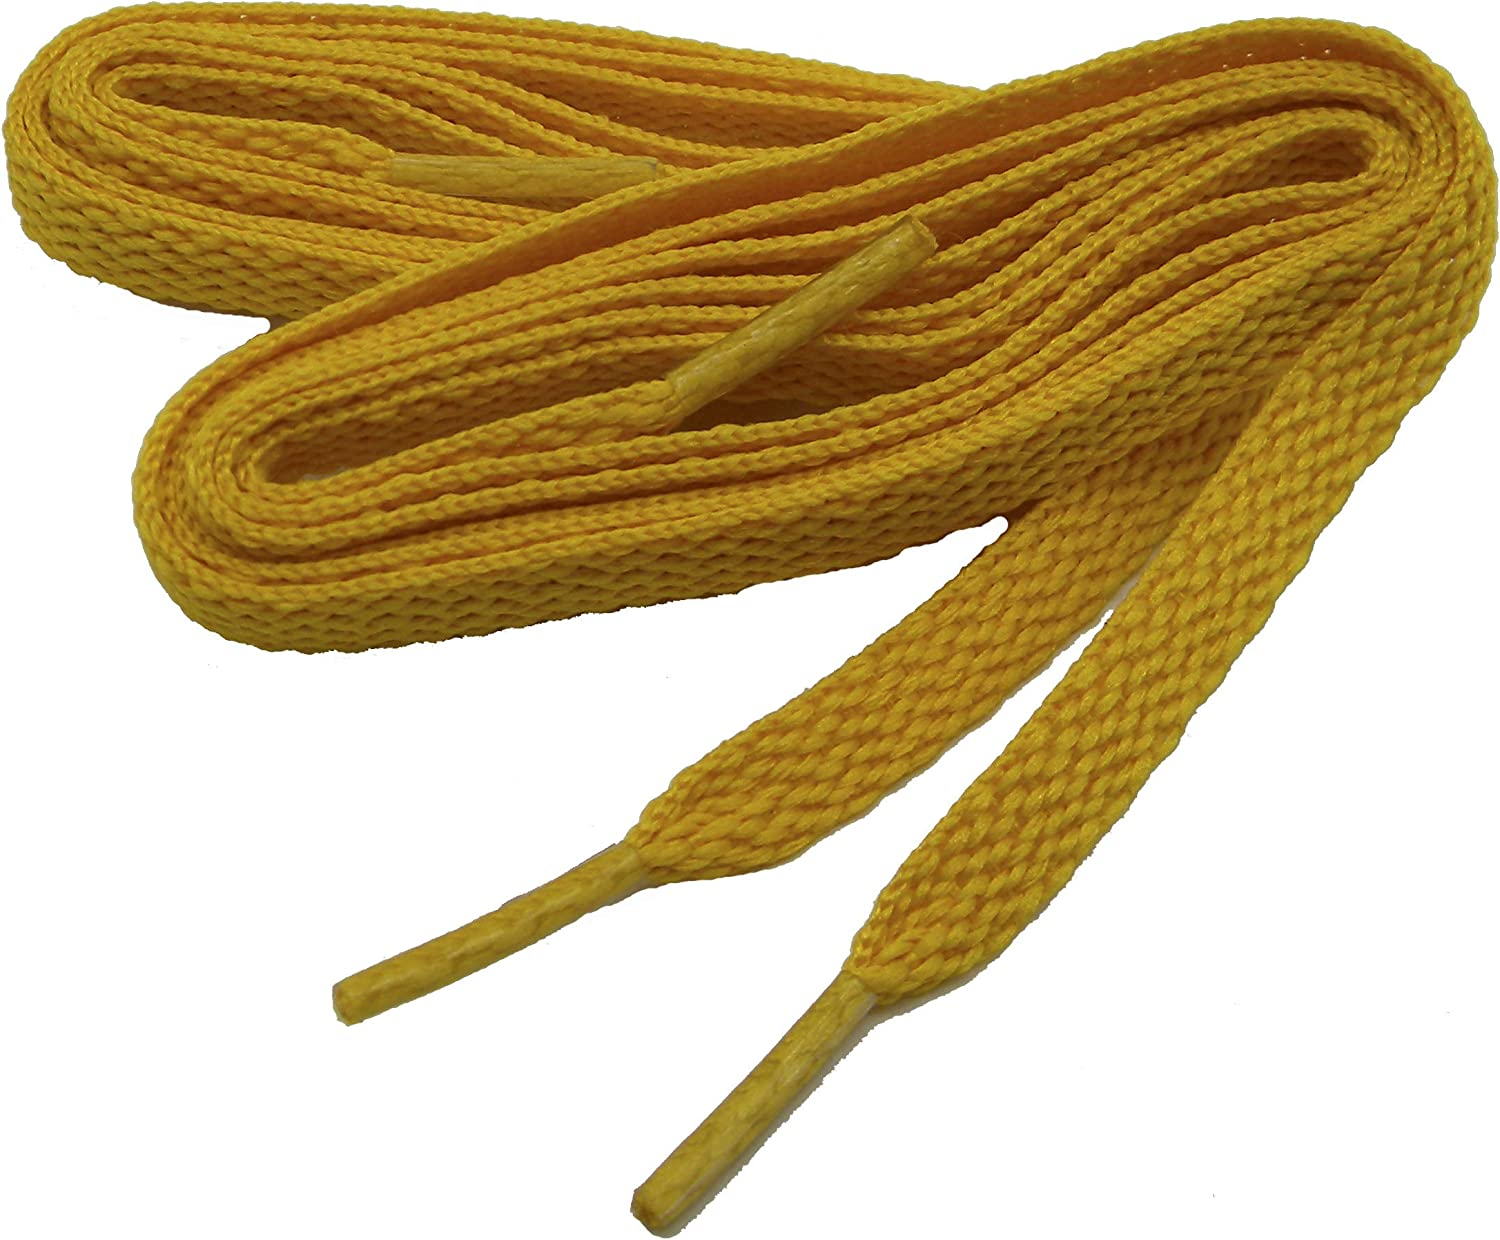 outlet 24 Pair Value pack Teamlaces Shoelaces 8m 5 Max 63% OFF 16 proATHLETIC Style